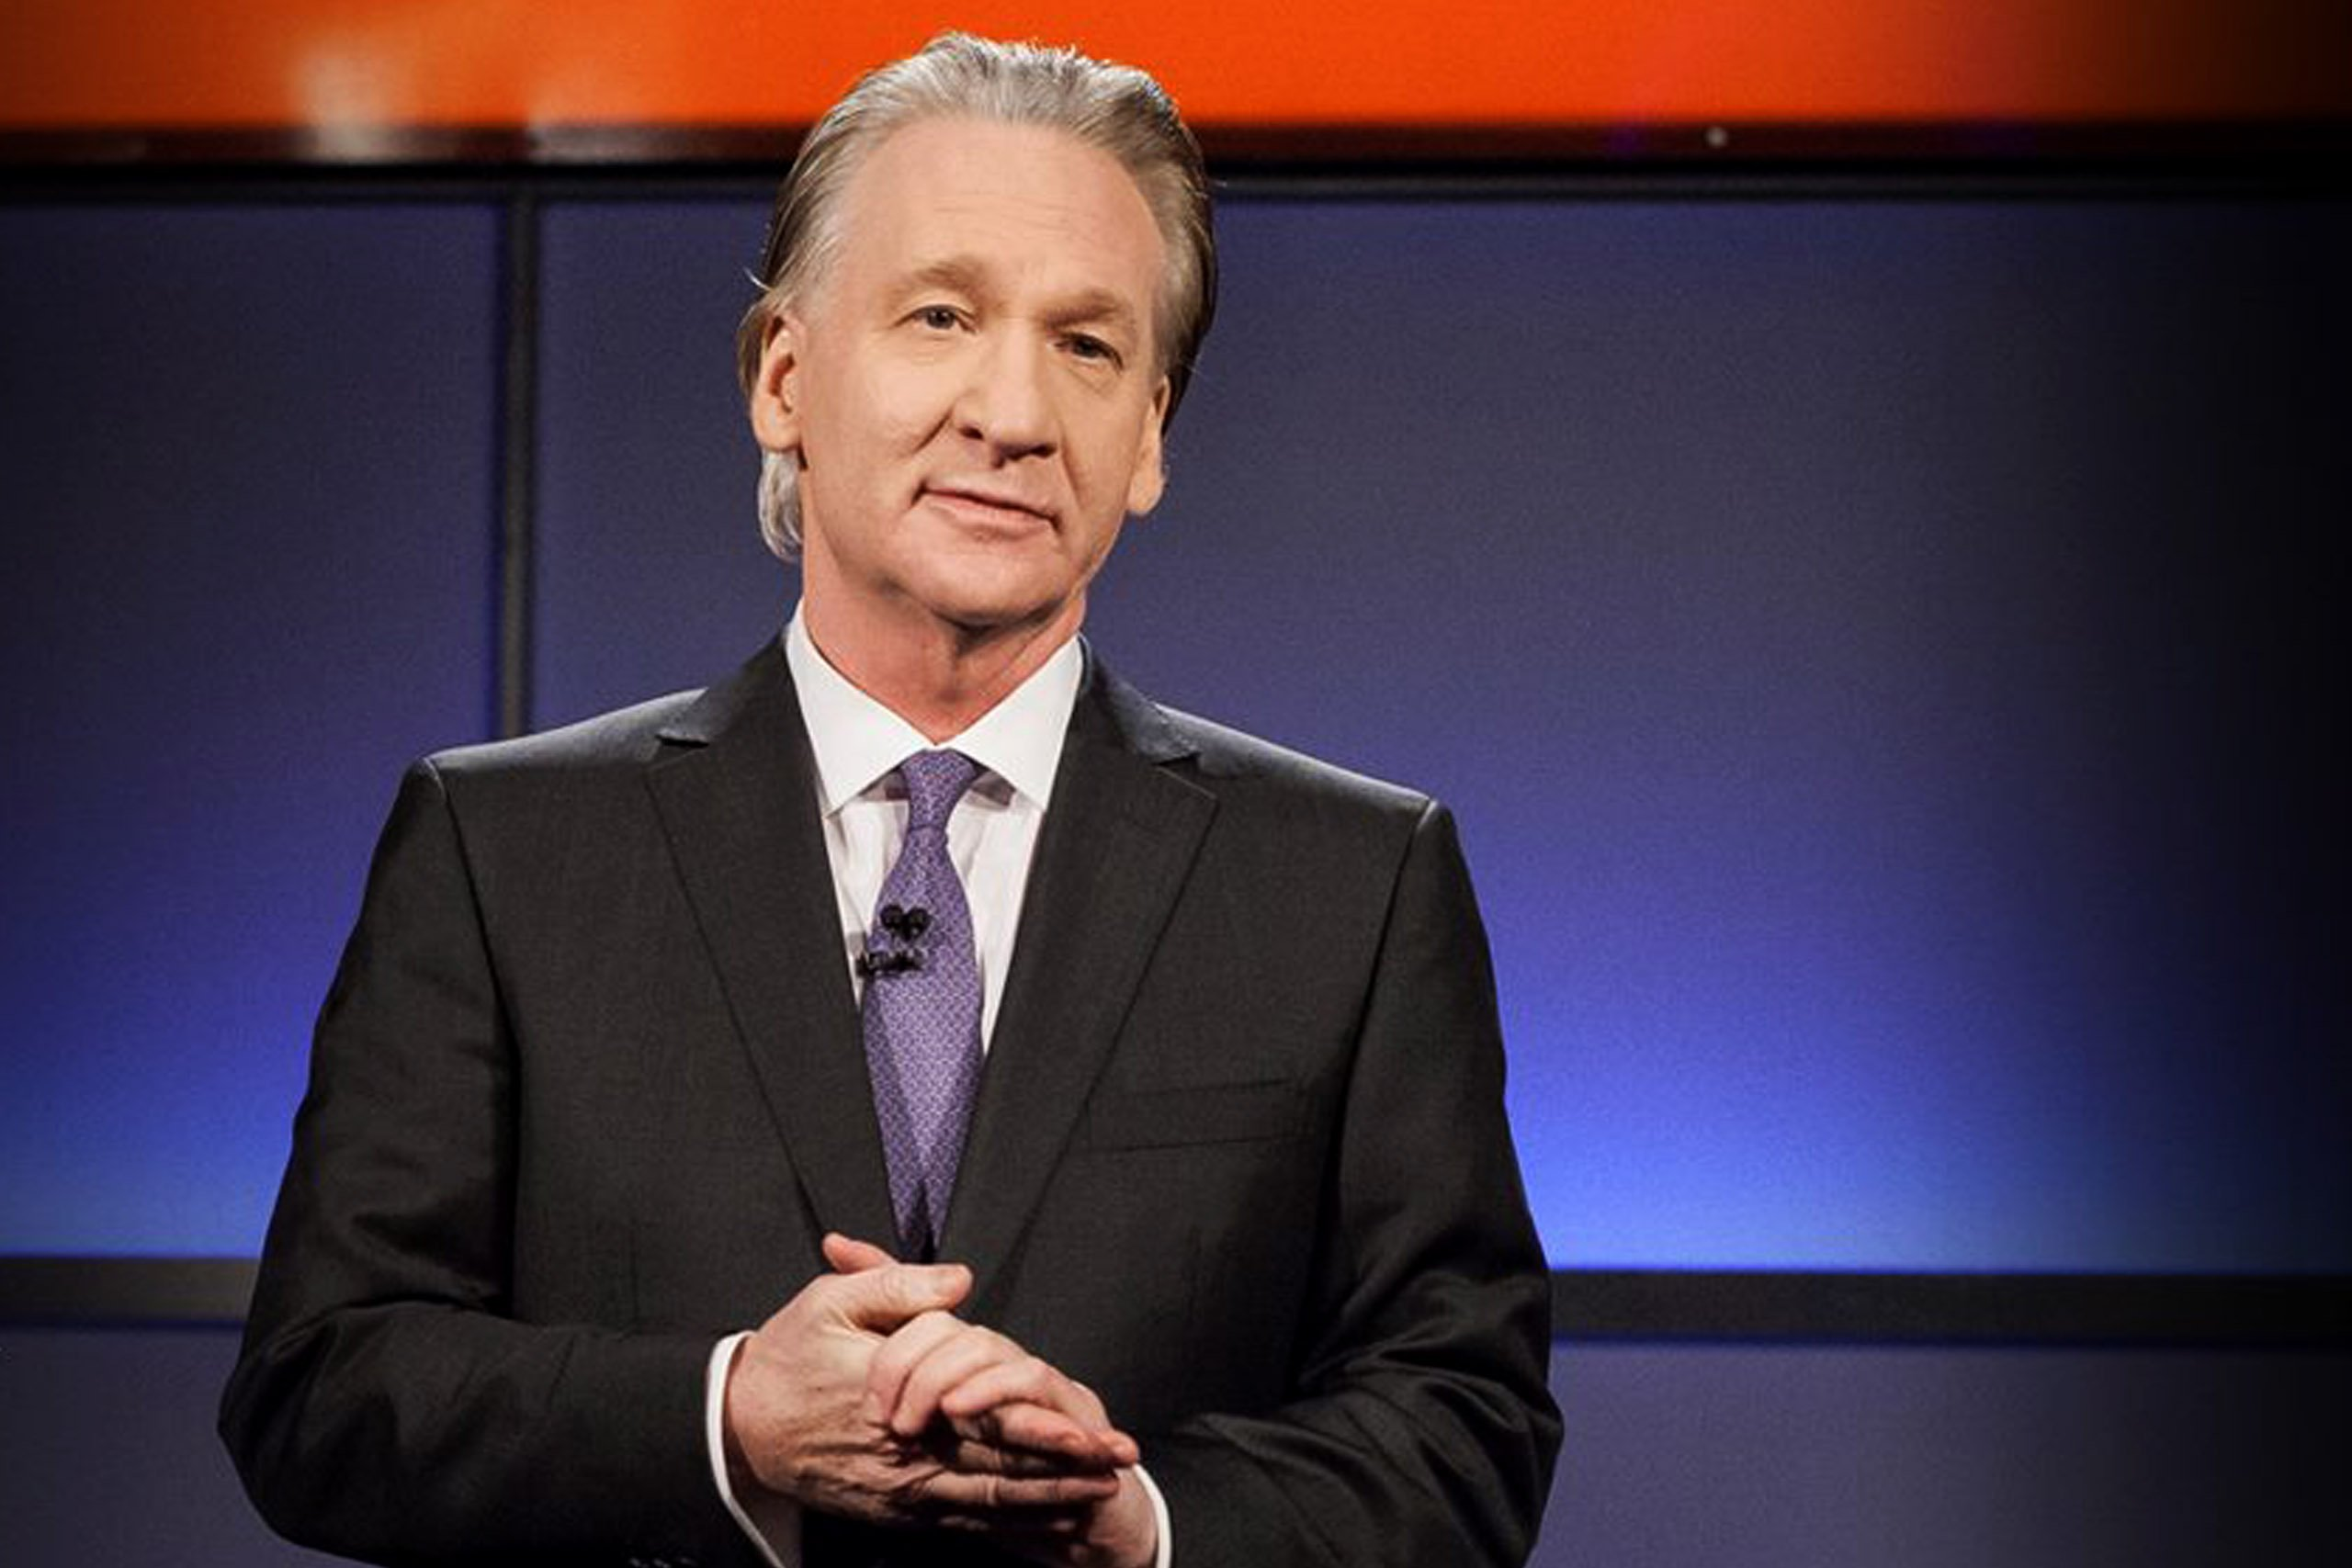 """Two survivors from the shooting at a high school in Florida joined Bill Maher on Friday to discuss gun control on his HBO show, """"Real Time."""" Both David Hogg and Cameron Kasky have become major proponents of gun control in the weeks since the attack at Marjory Stoneman Douglas High School in Parkland, Florida, where …"""